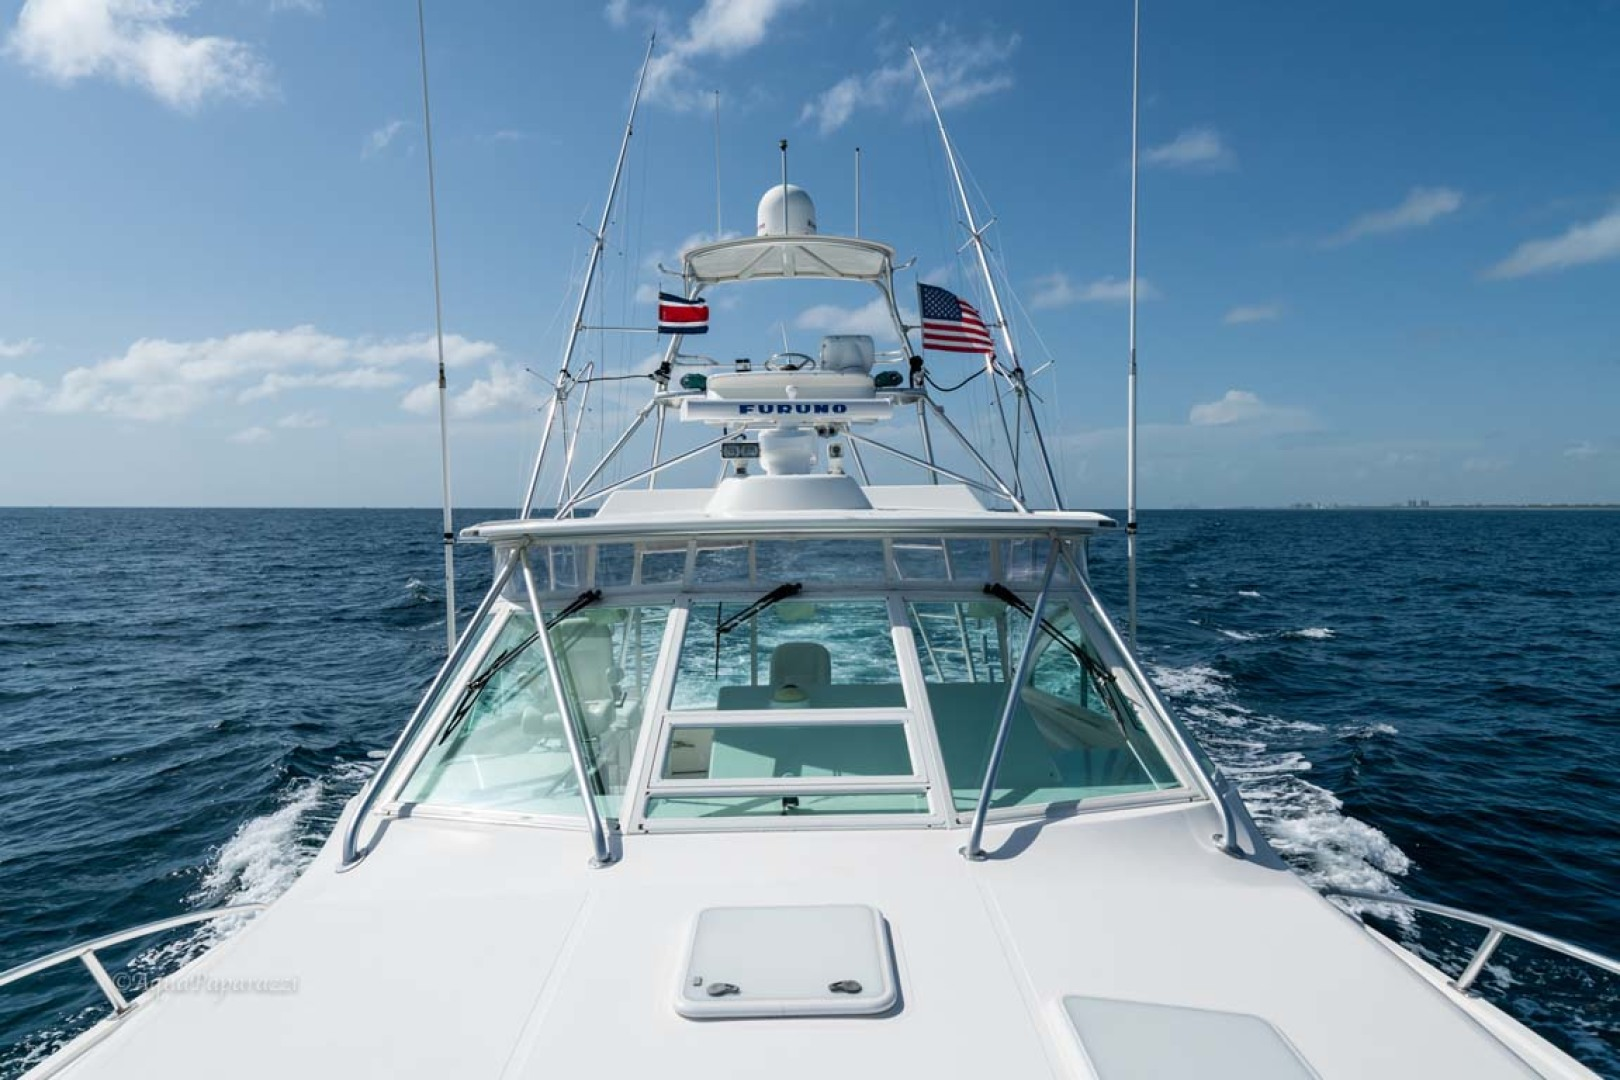 Cabo-Express 2007-Marauder Palm Beach Gardens-Florida-United States-Foredeck Looking Aft-1189492   Thumbnail